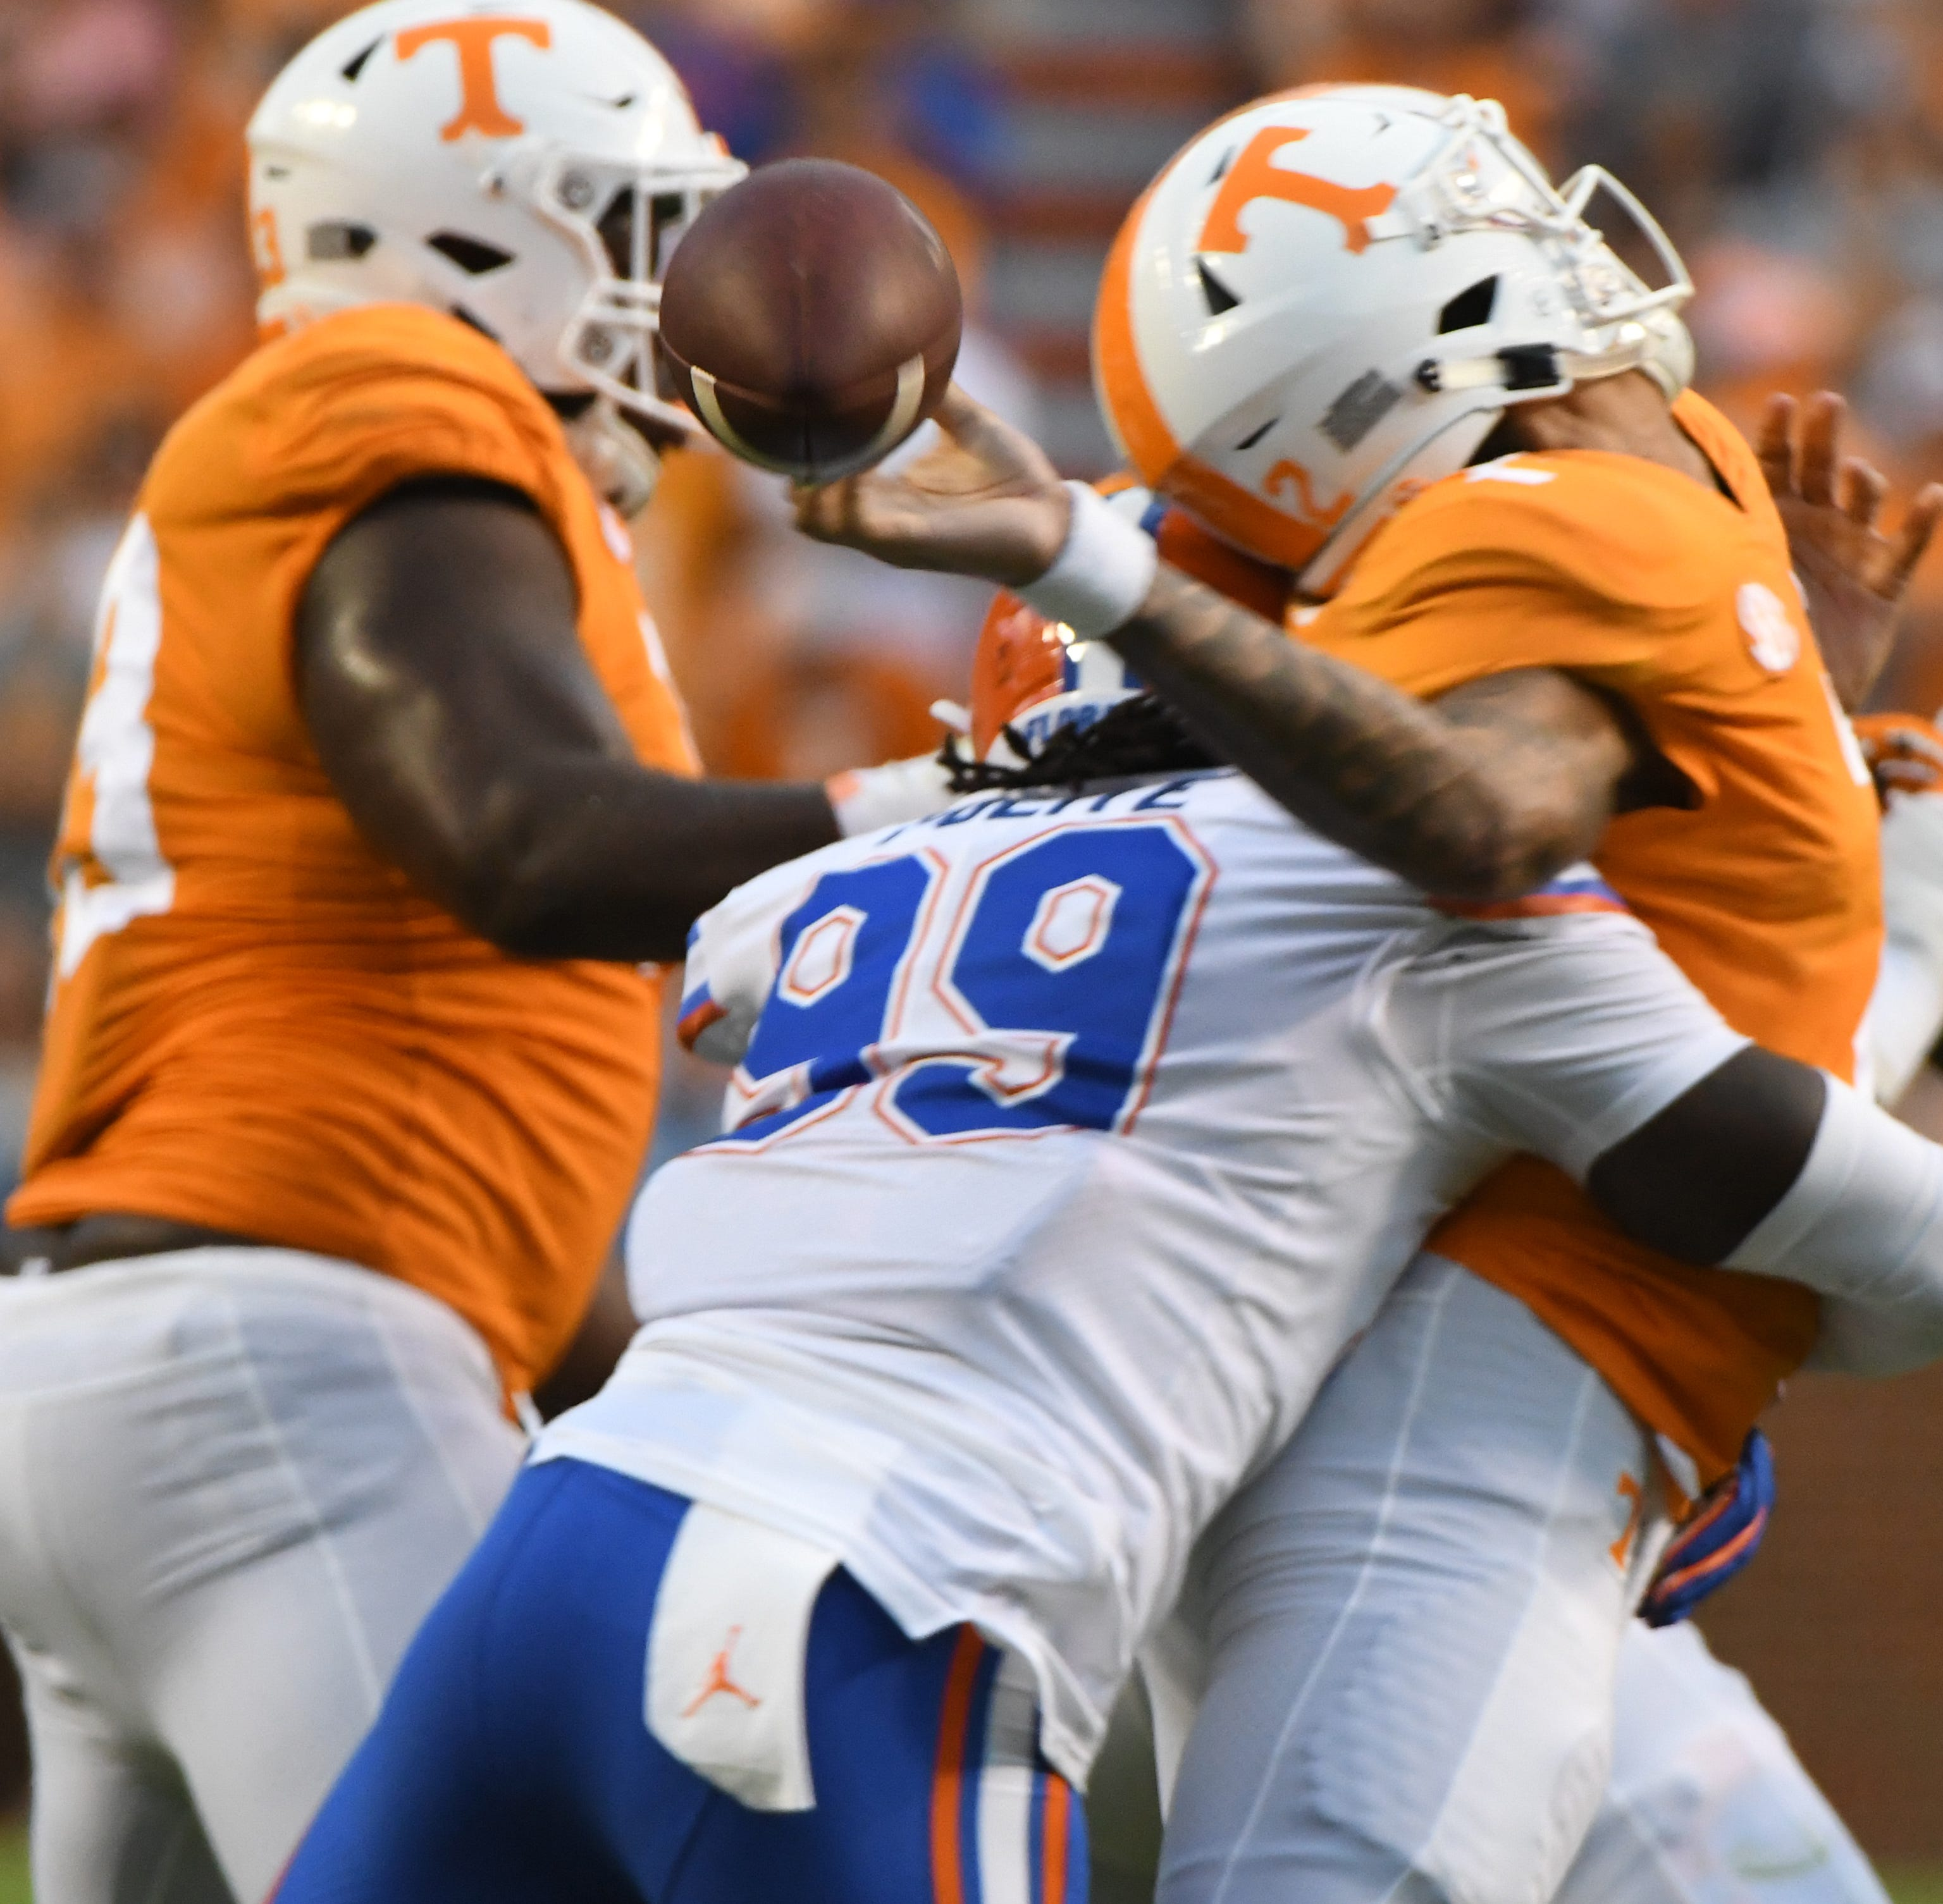 How Tennessee Vols lost 47-21 to Florida